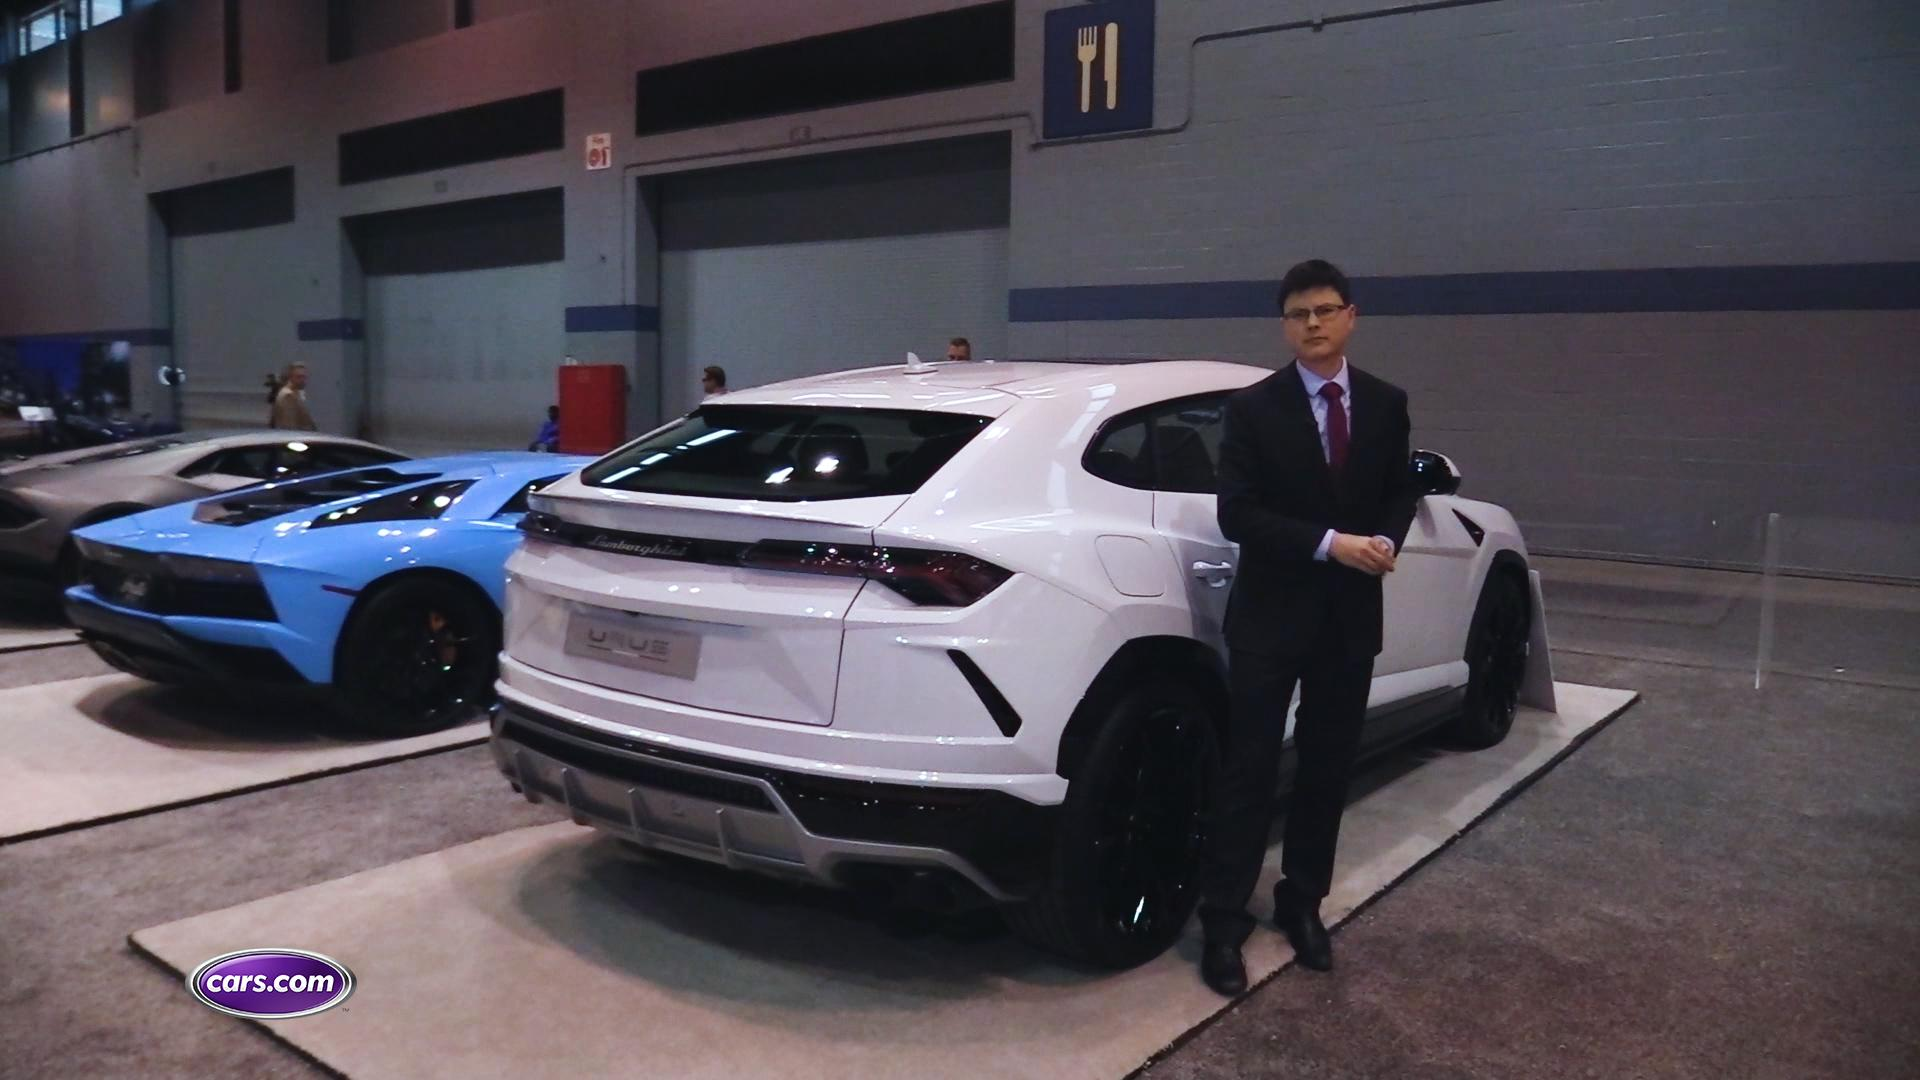 2019 lamborghini urus video review | news | cars